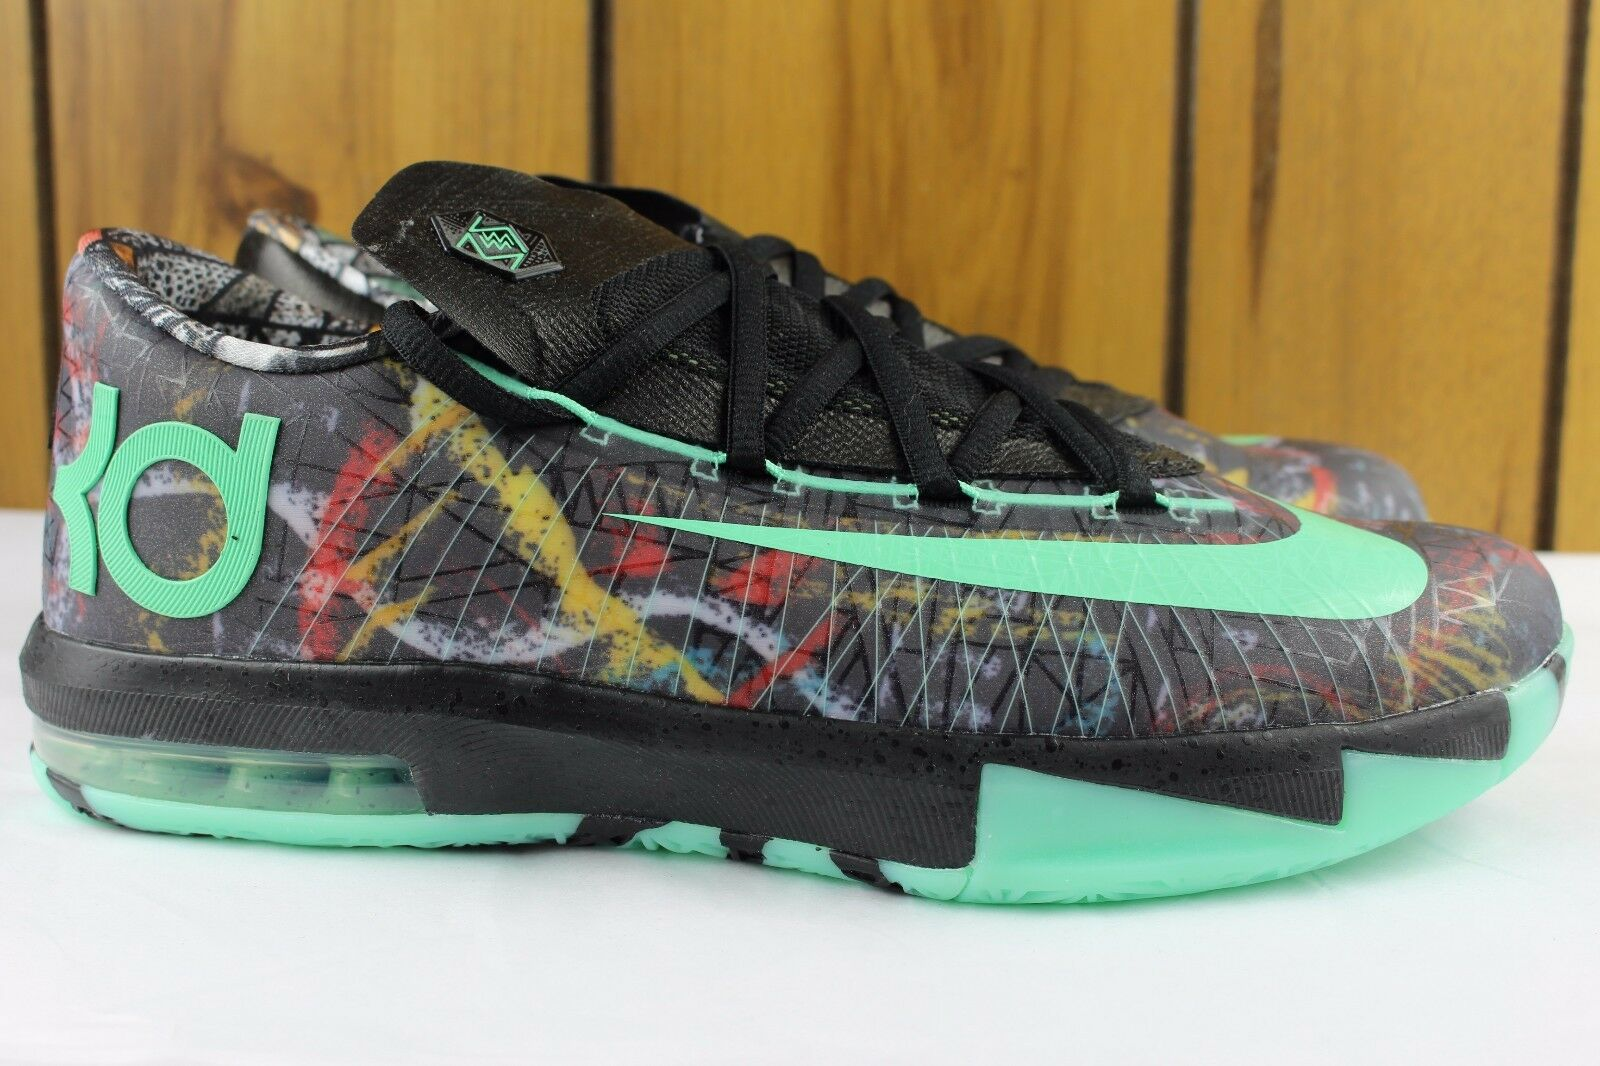 KD VI GS ALL STAR MAESTRO GUMBO 599477 900 SZ 4.0 Y SAME AS WOMAN 5.5 NEW RARE!